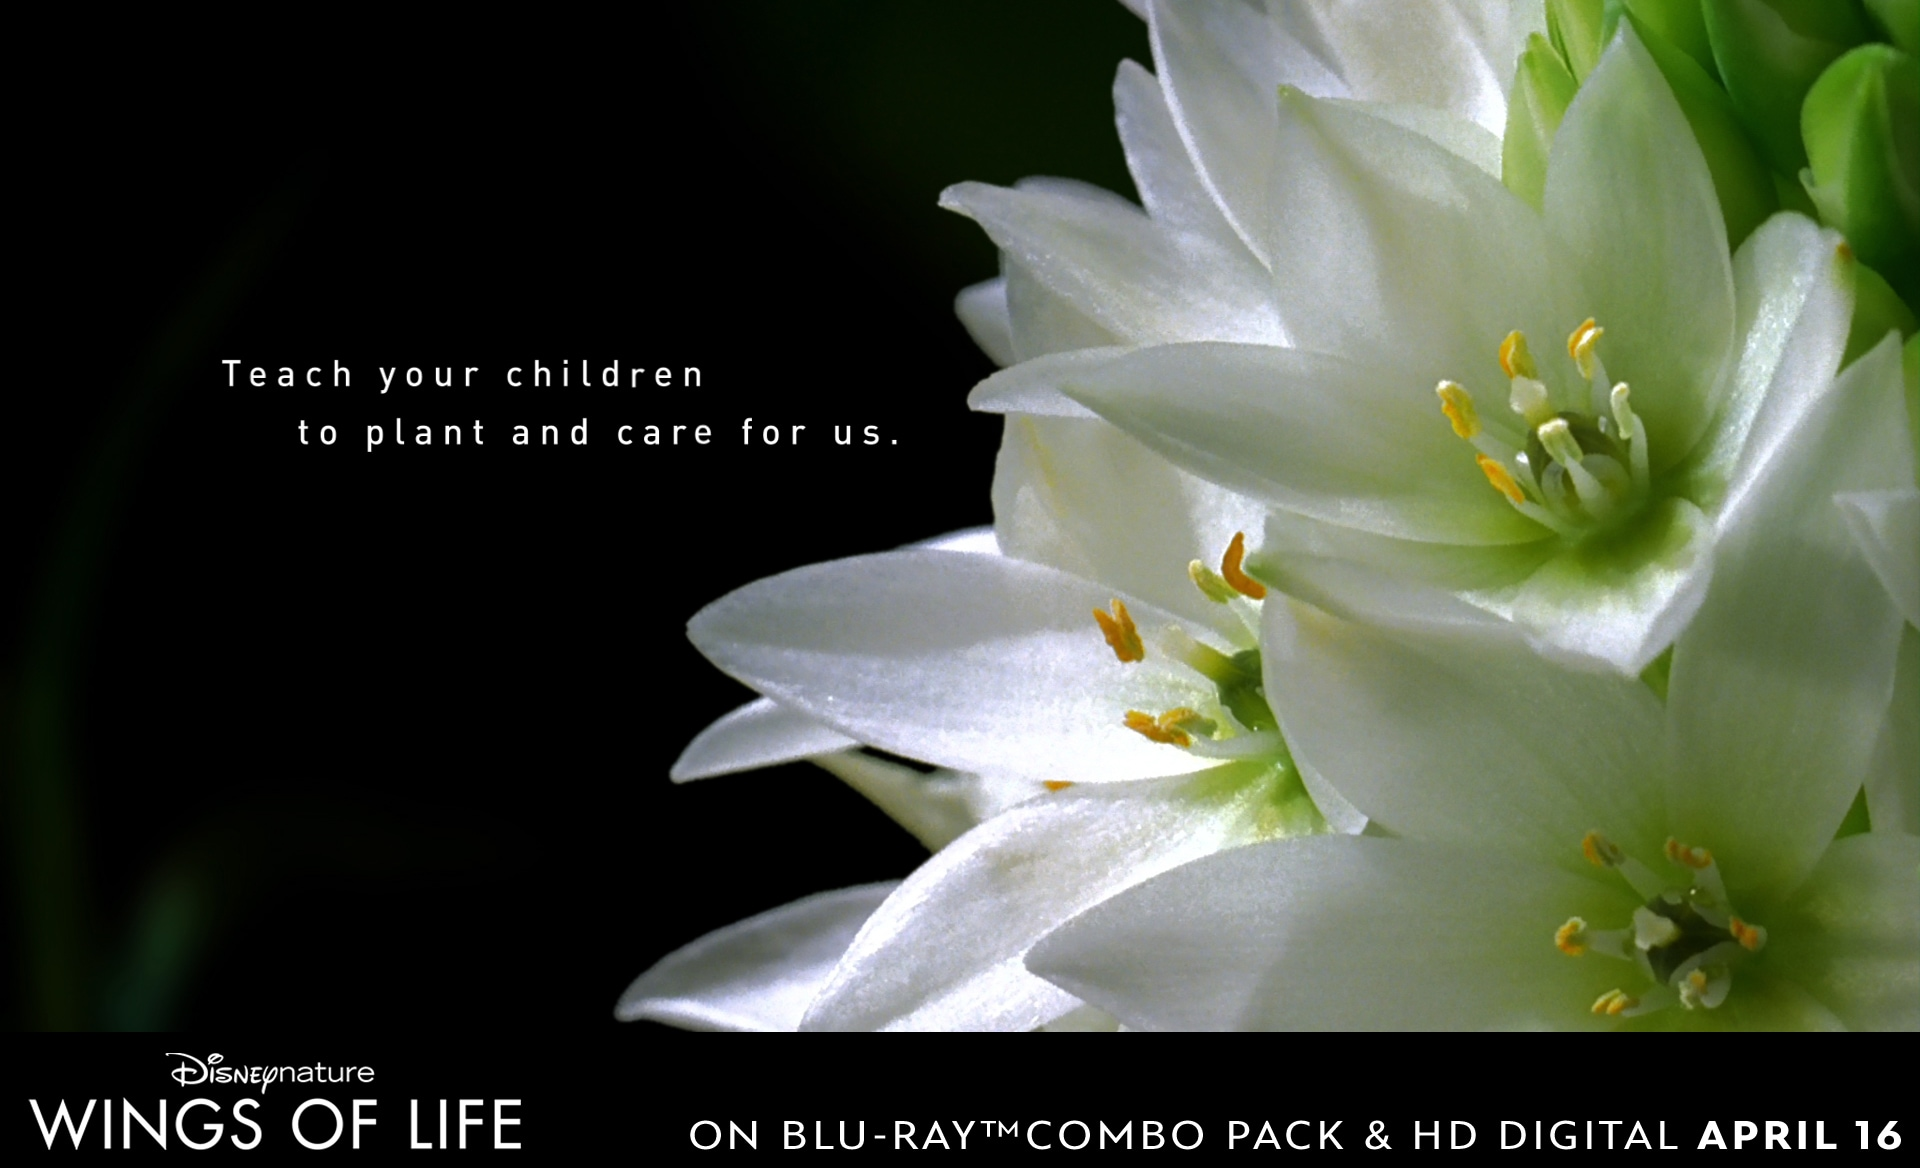 Teach your children to care for the environment by showing them to care for plants and flowers.